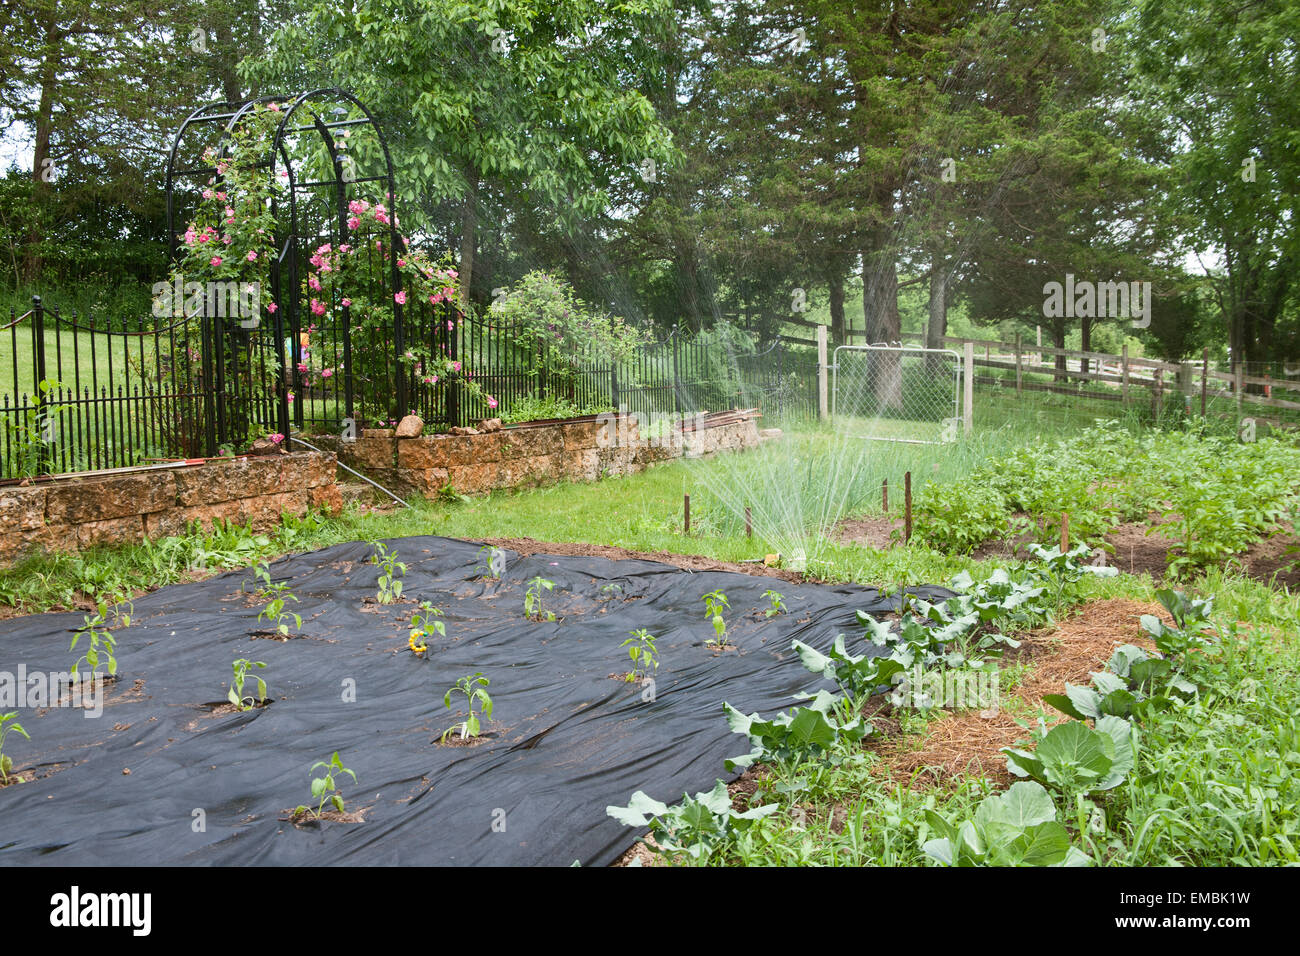 Vegetable Garden Being Watered, With Freshly Planted Sweet Peppers  Surrounded By Black Fabric Mulch In A U0027kitchen Gardenu0027